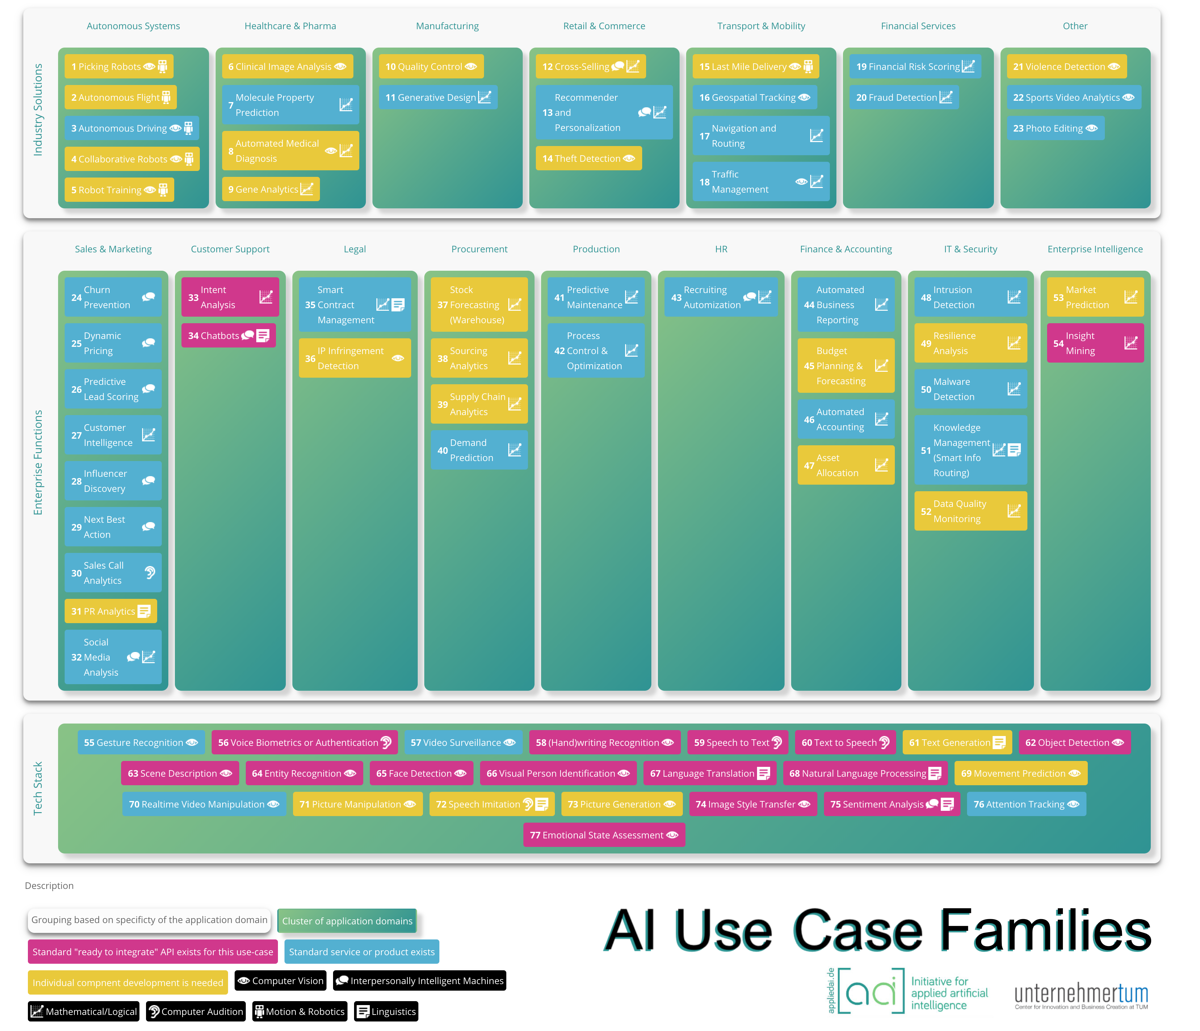 appliedAI_Use_Case_Families